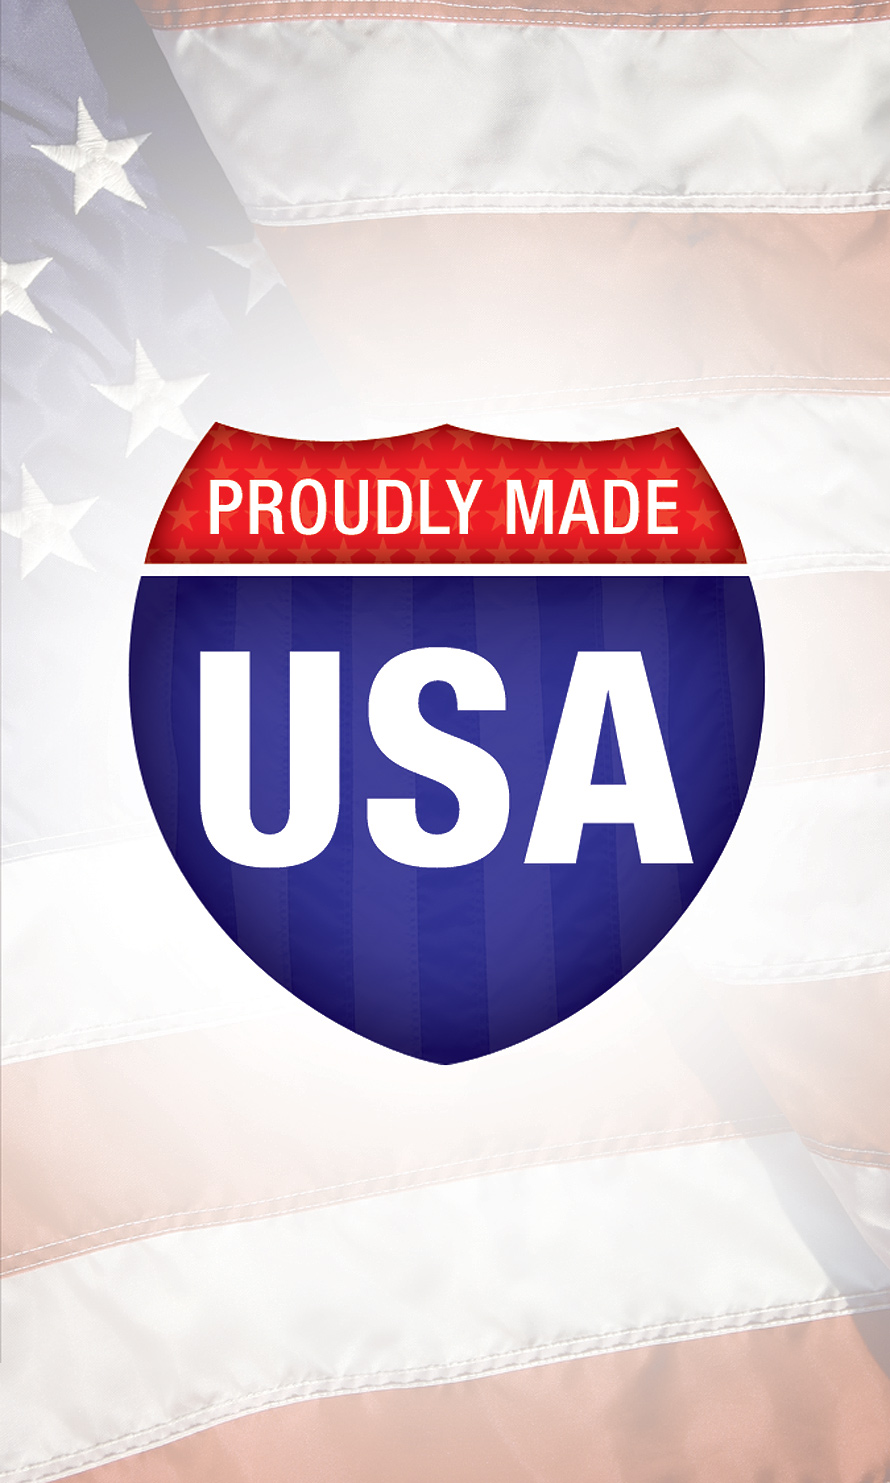 Proudly Made USA